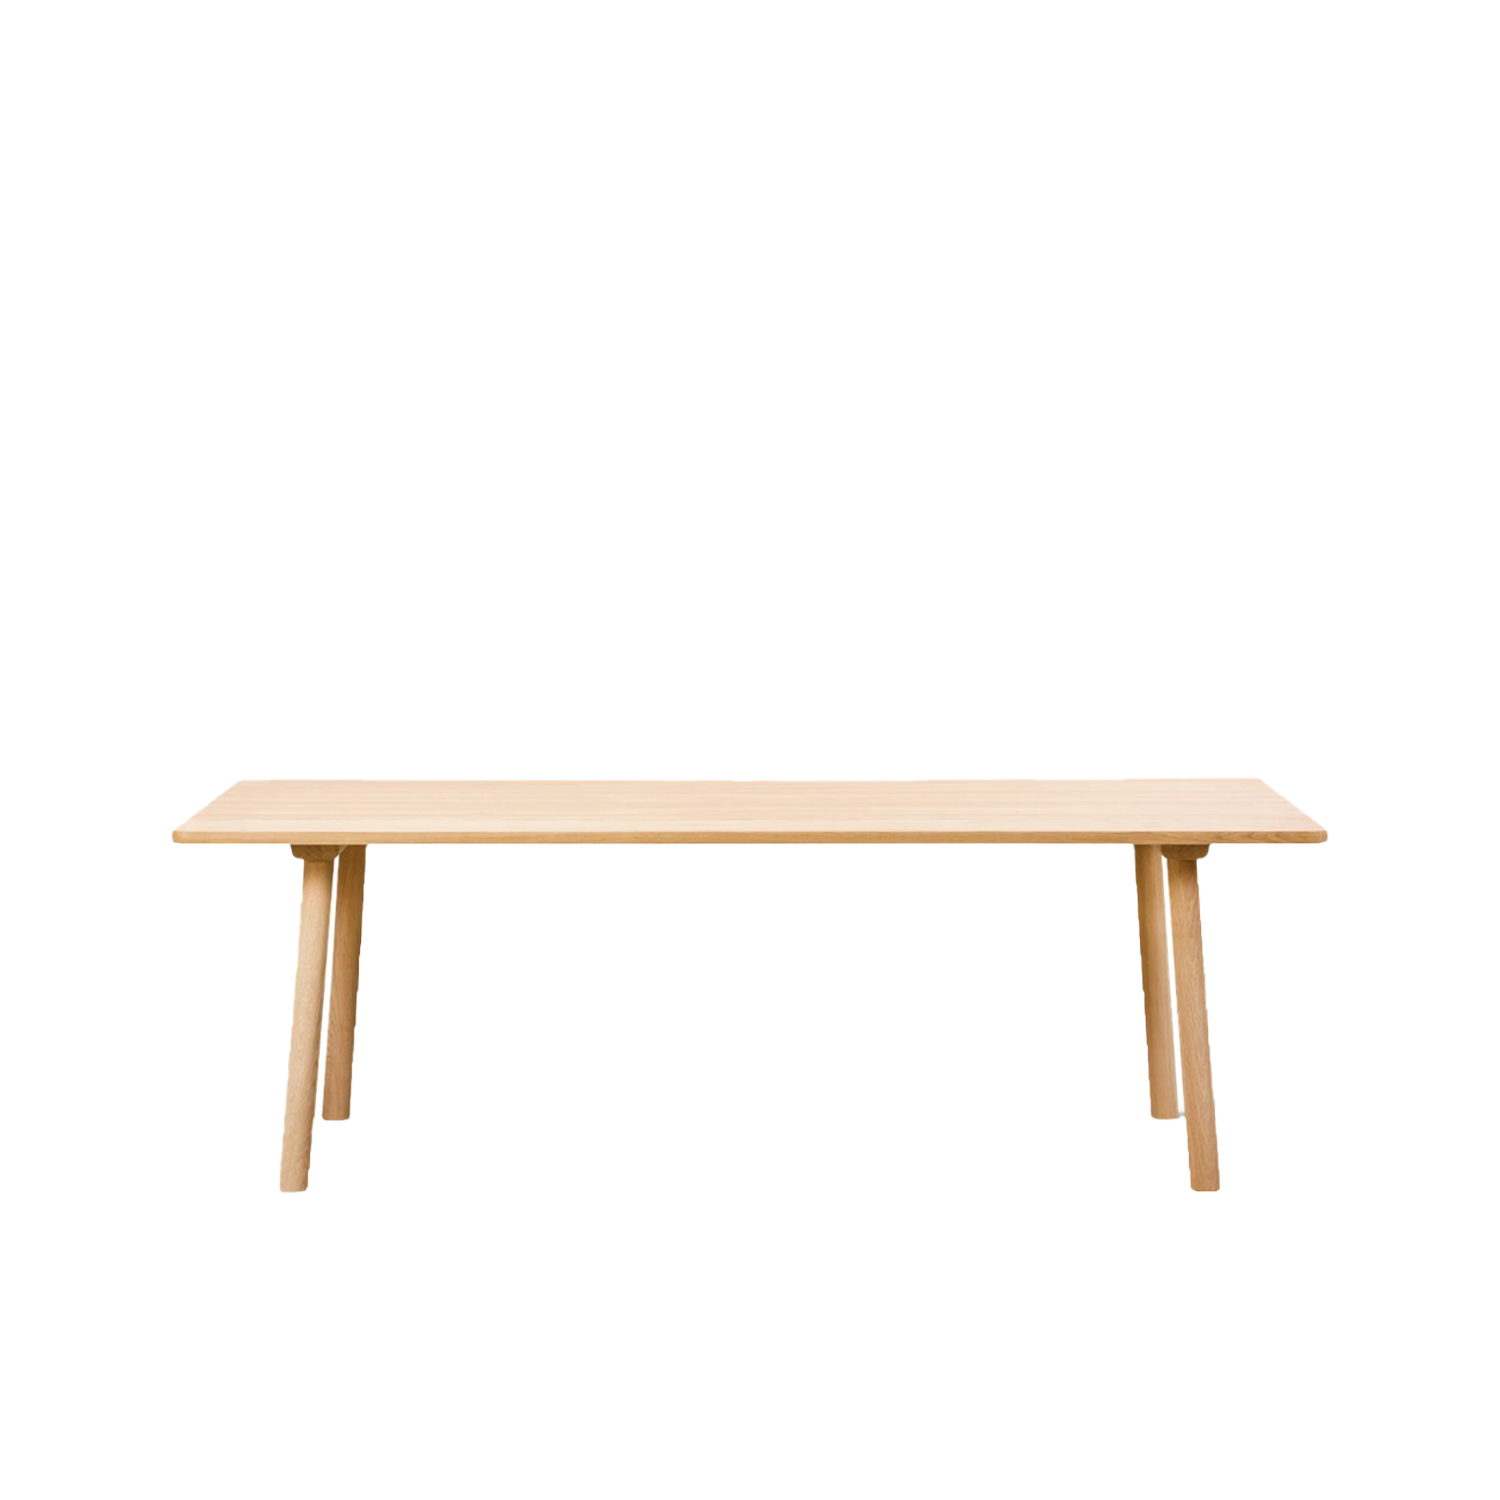 Taro 6106 Dining Table - Taro is a series of solid oak tables created with a strong focus on daily function and use, whether in the kitchen, dining area or meeting room. With machined grooves along its length, the table top resembles a traditional plank table, but has been executed in a refined and knotless selection of oak that will acquire the most beautiful patina.  Useful, understated, responsible design is an ongoing theme for Jasper Morrison. Seen in his focus on contemporary archetypes reduced to their functional essentials, as part of his definition of good design. Such is the case with our Taro Tables. Instead of starting with the purpose of a wood table, the starting point was finding a purpose for the wood itself.   Inspiration came from the premium grade quarter sawn oak at our Fredericia factory, used for many of our most compelling furniture designs, such as The Spanish Chair. The timber comes from trees aged upwards of 150 years, so maximising the most appealing planks while minimising wastage was a high priority.   The Taro Tables exude the natural appeal of oak, which will patinate beautifully over time, in a simple design that's unassuming yet appealing. Whether round or rectangular, for residential dining or corporate meetings, Taro commands attention with its solidity and stunning natural patterns of the wood grain.  | Matter of Stuff